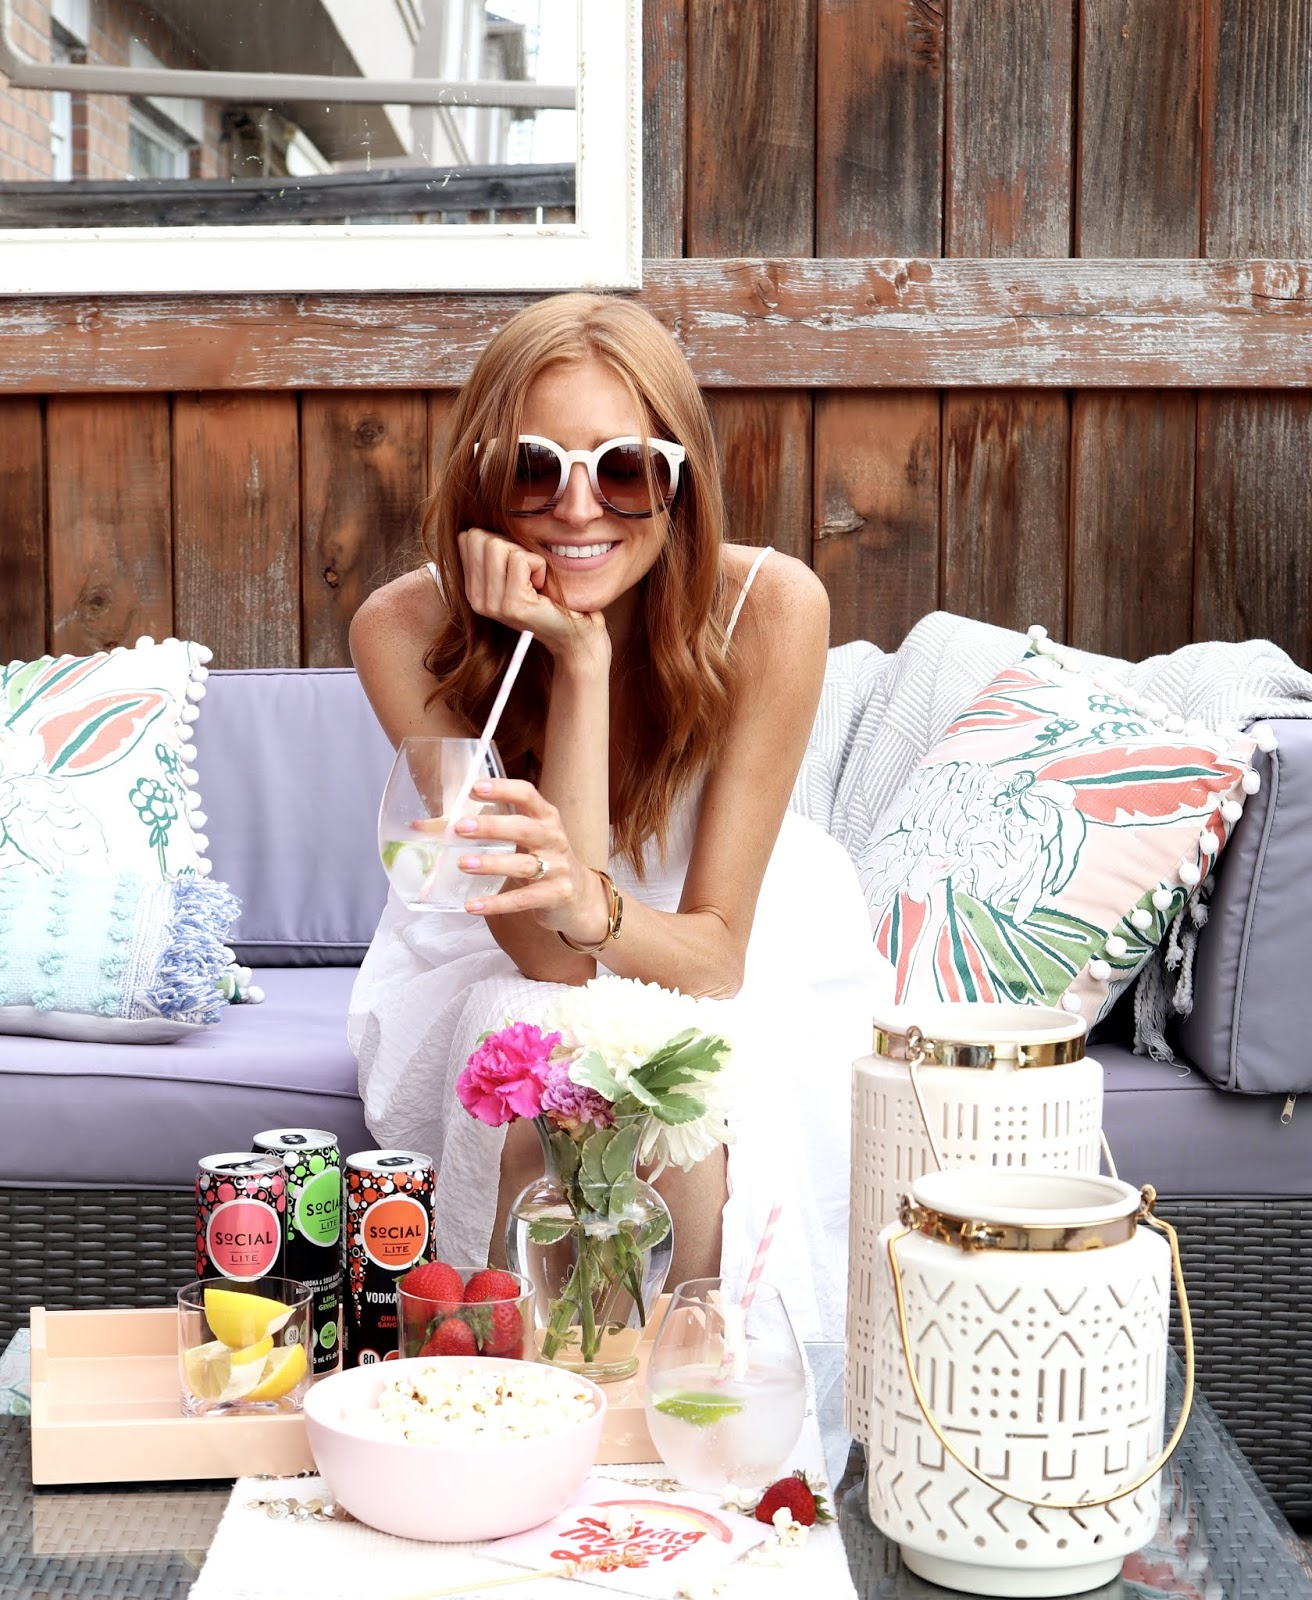 How to turn your patio into an oasis with social lite vodka